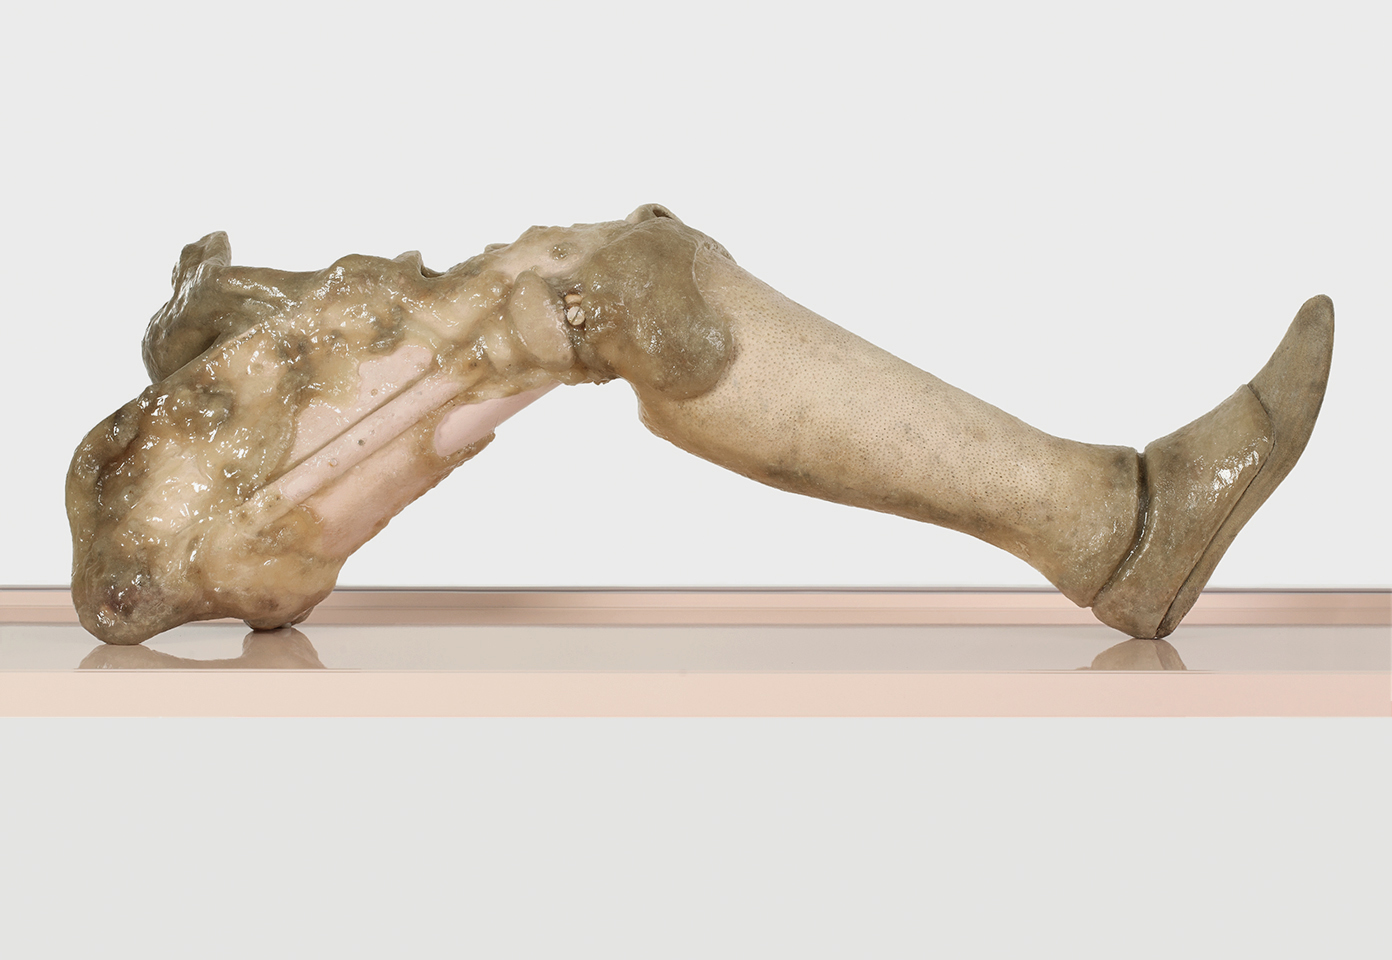 ONANIA / Aetiology Unknown 18 (detail) / 2012 / 160 x 50 x 120 cm / prosthesis, fat, leather, cosmetics, polyvinyl acetate, vitrine